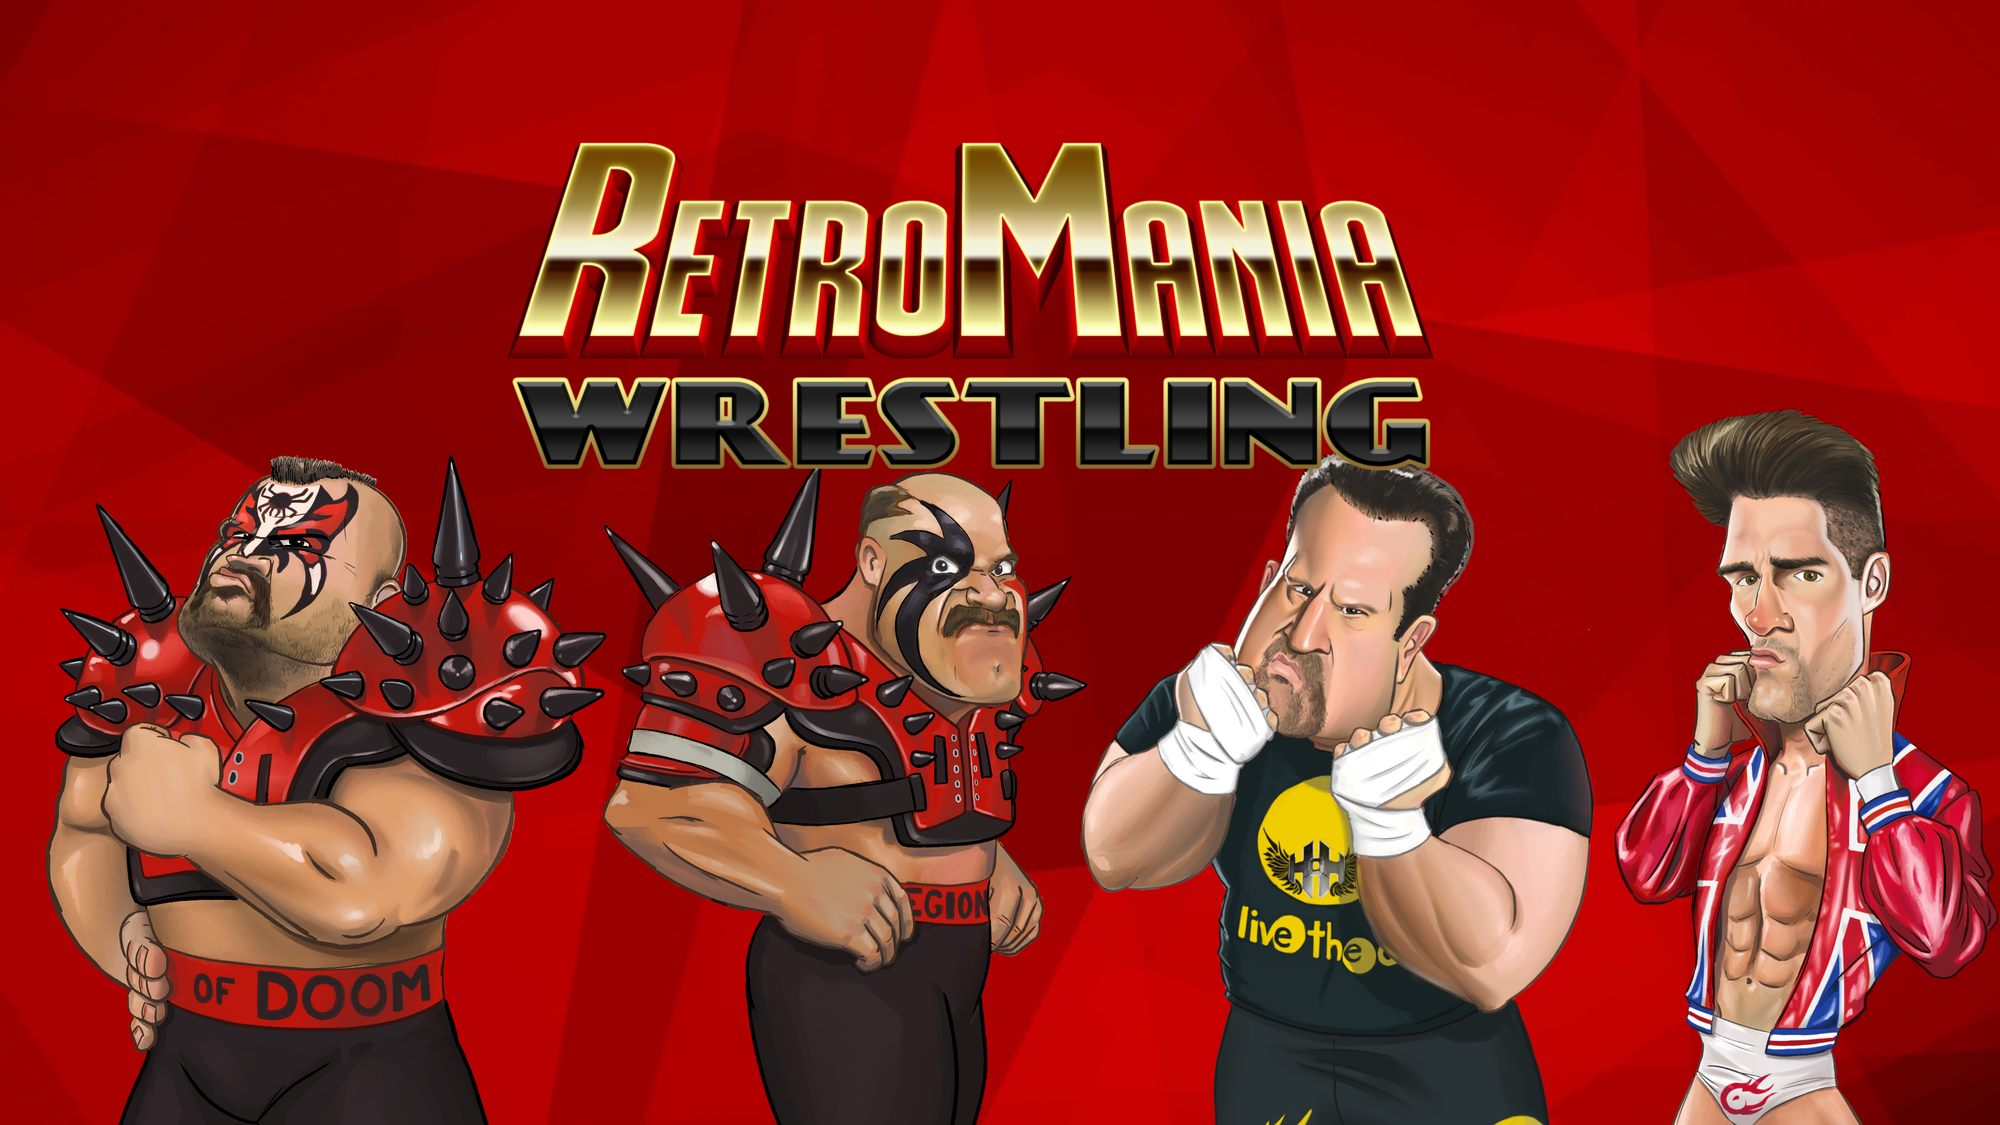 retromania-wrestling-fighters.jpg